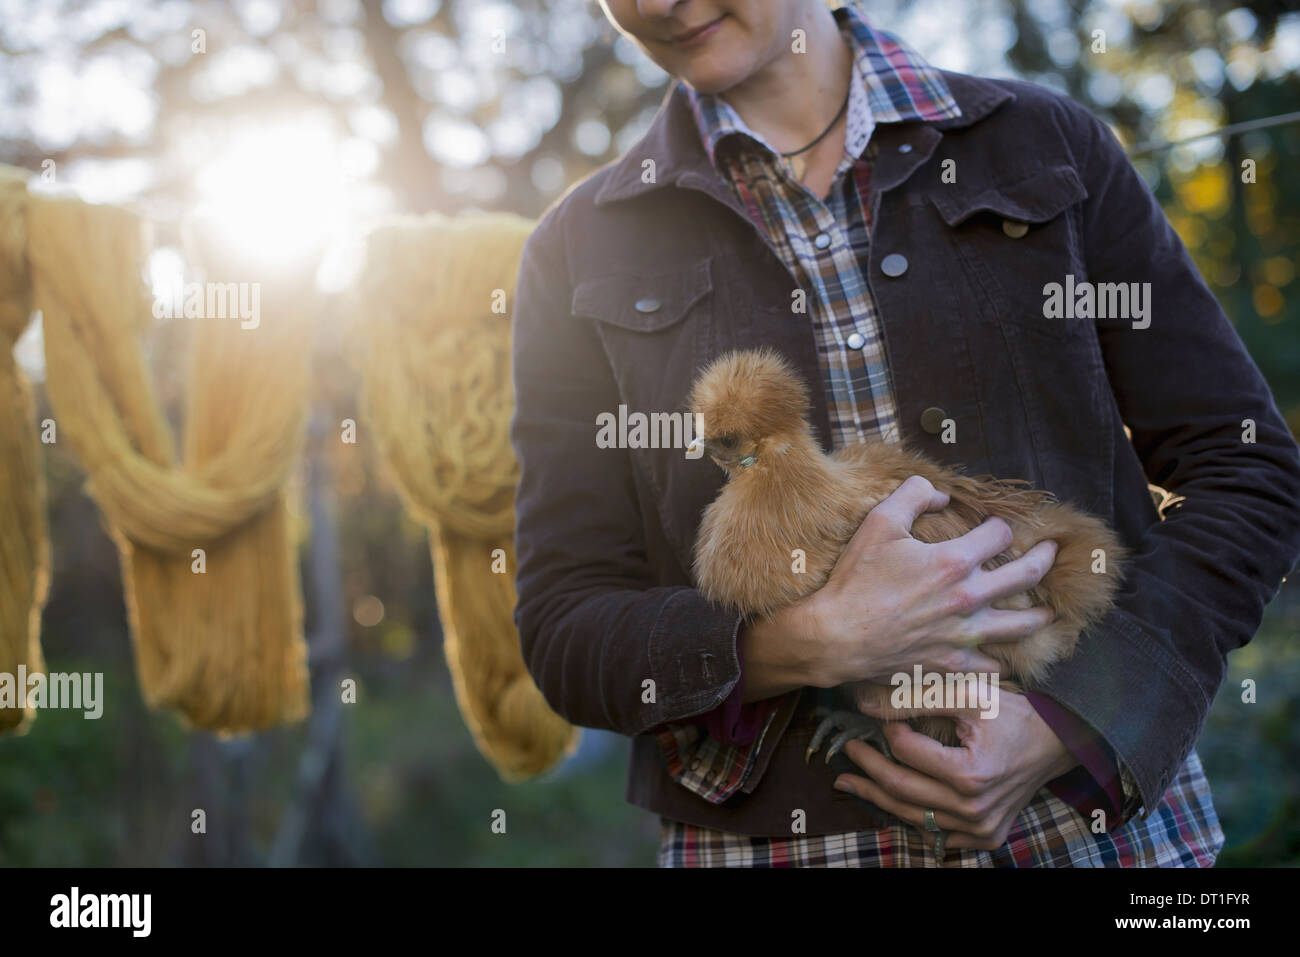 A woman holding a small brown fluffy chicken washing line Autumn sunshine filtering through trees Stock Photo